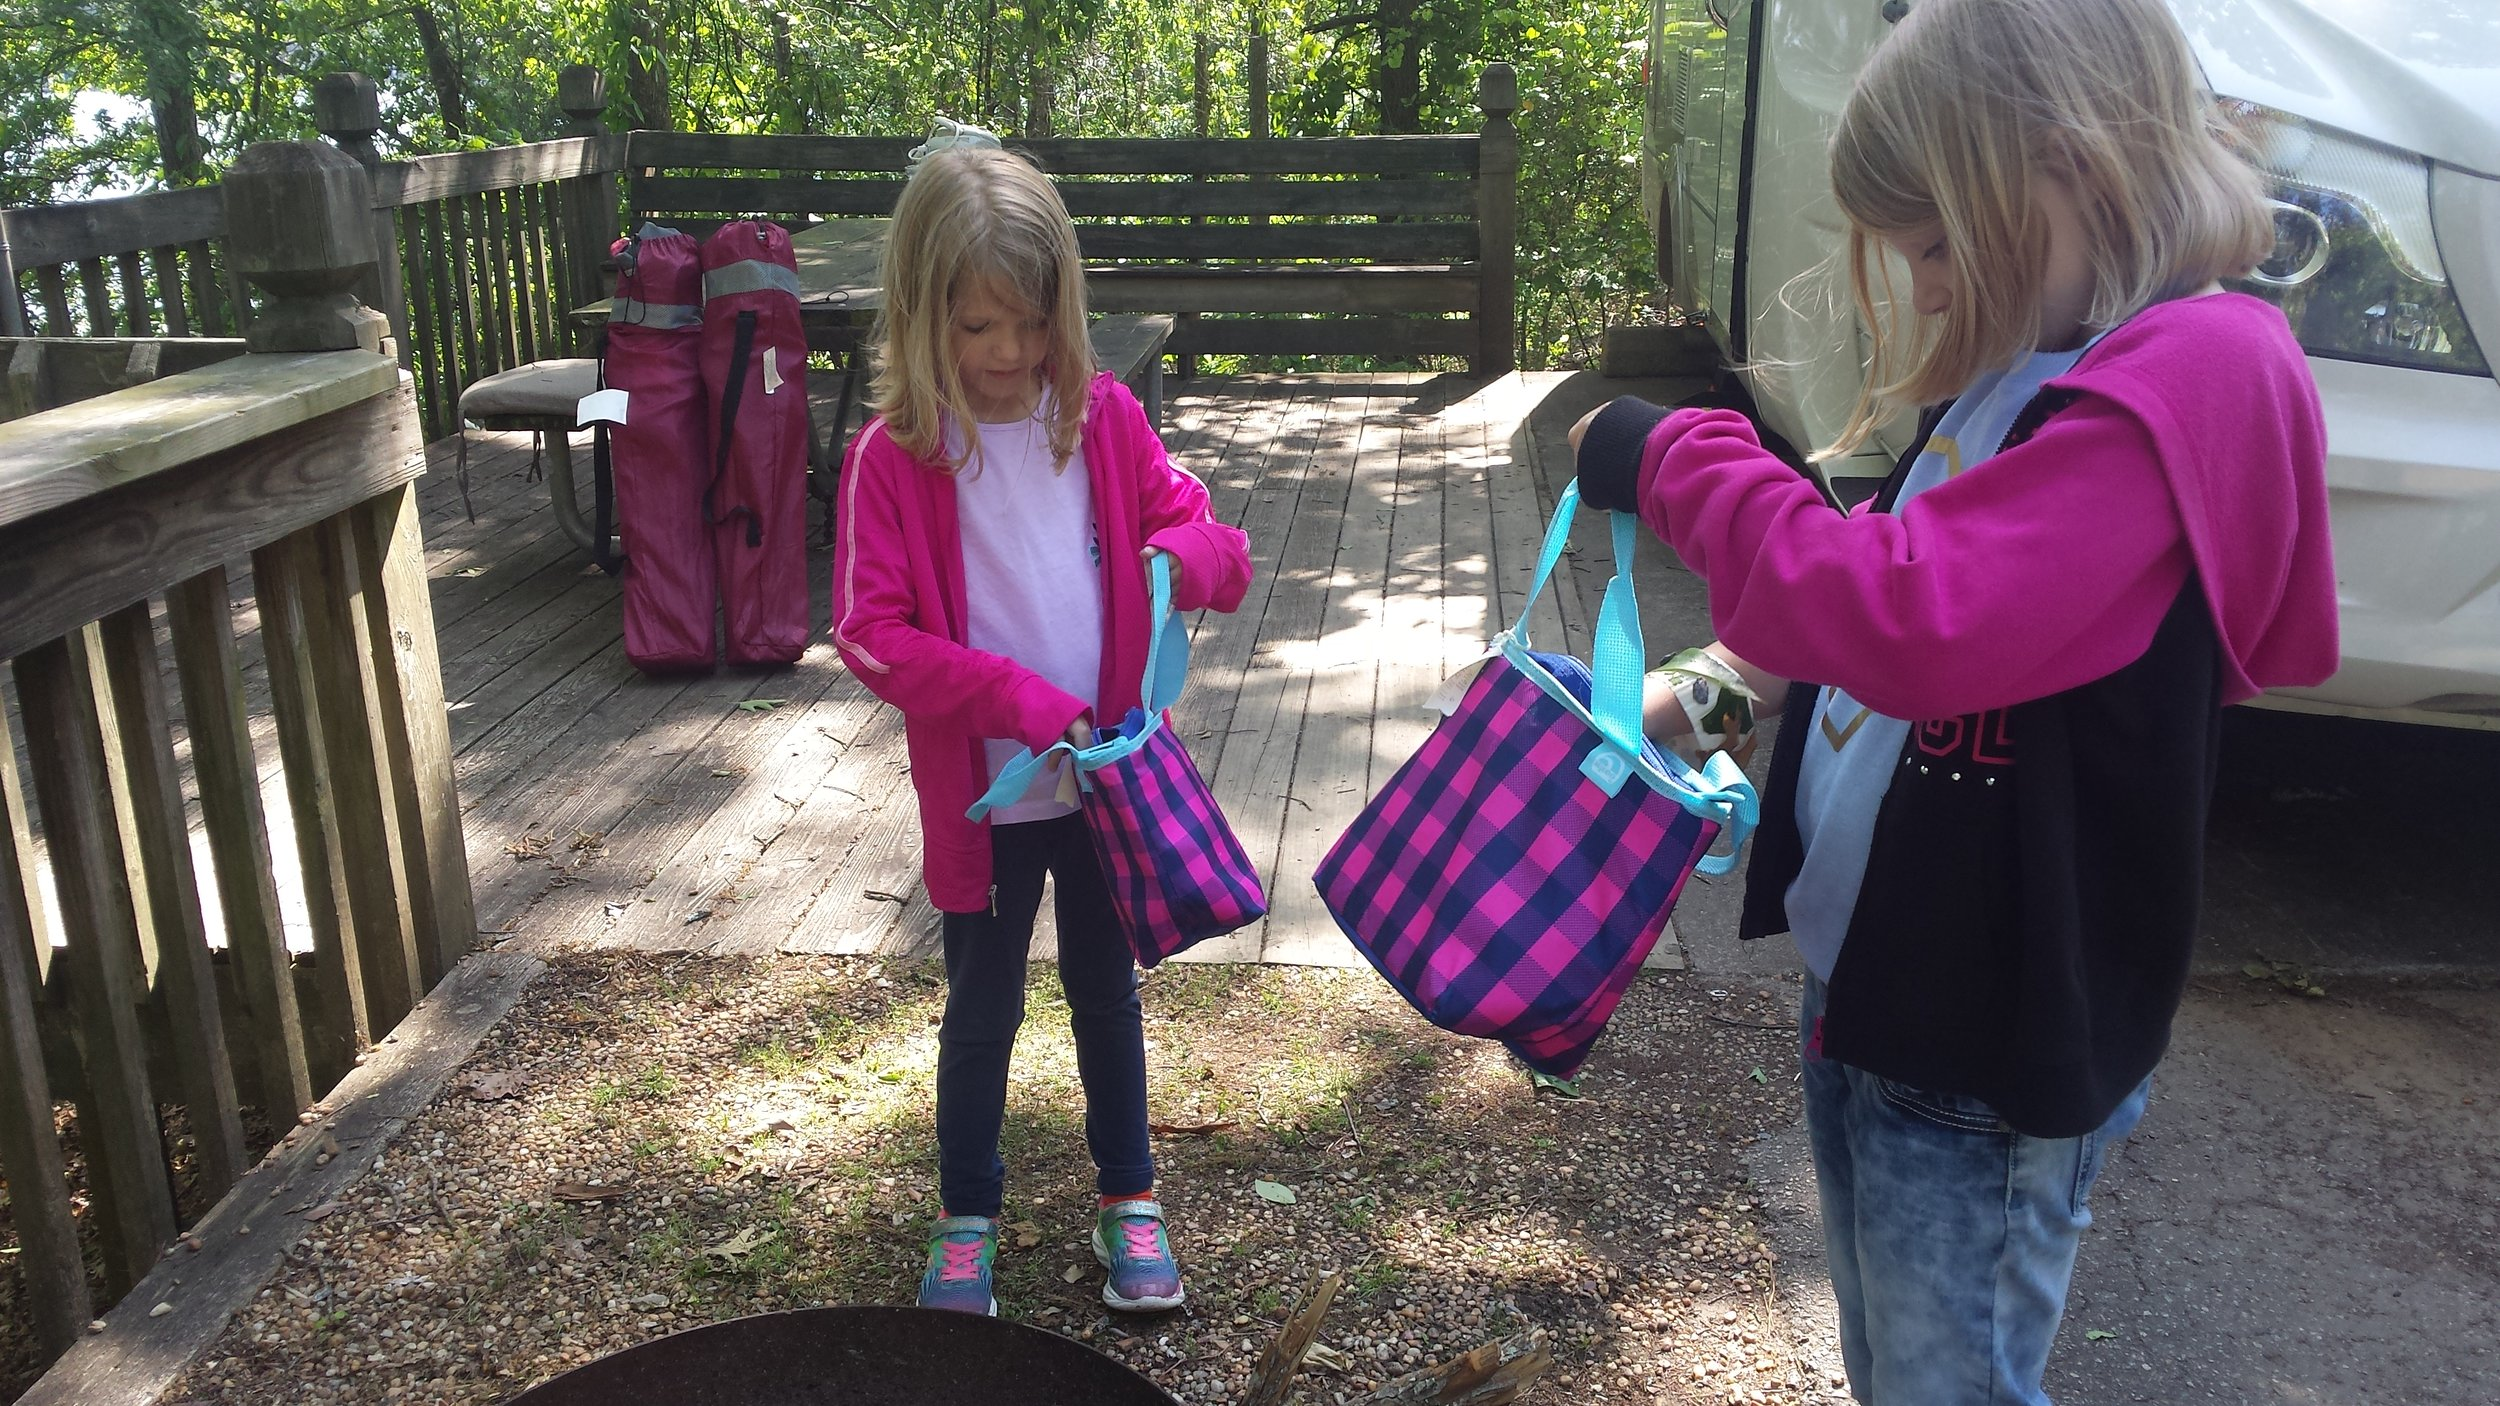 First day in camp, the kids inspected their new hiking bags